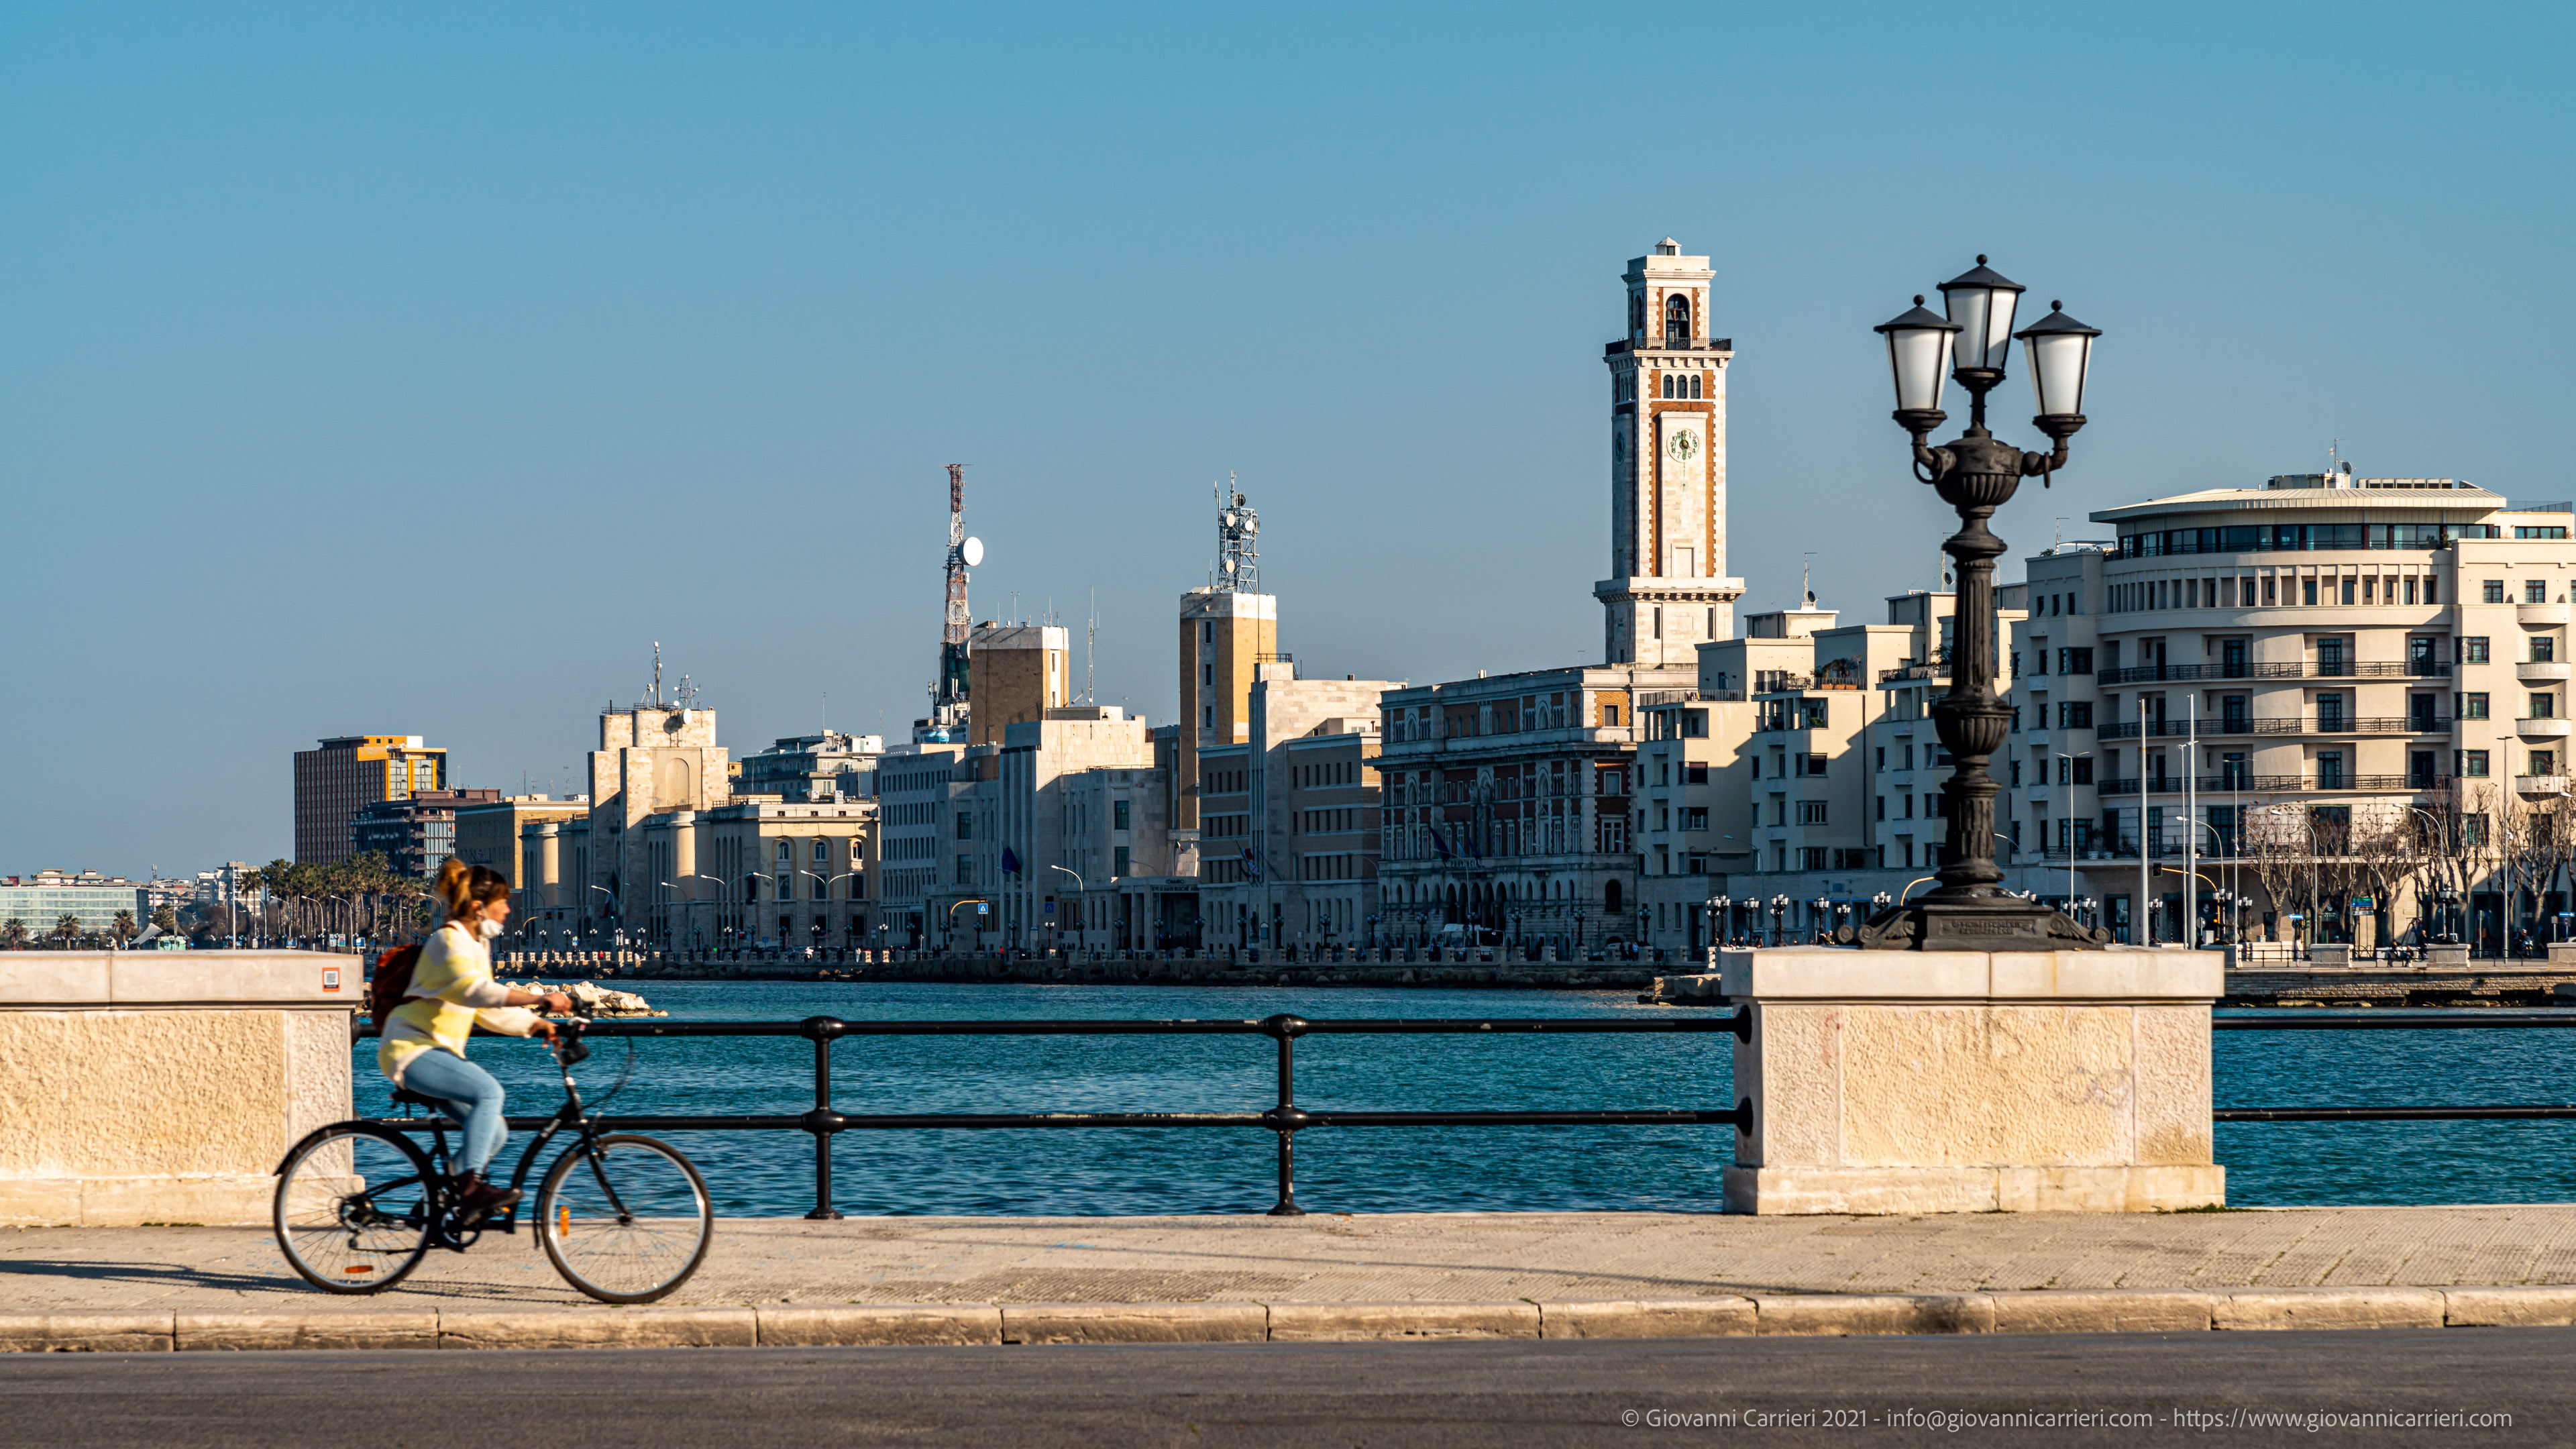 The bicycle, the covid, and the waterfront of Bari